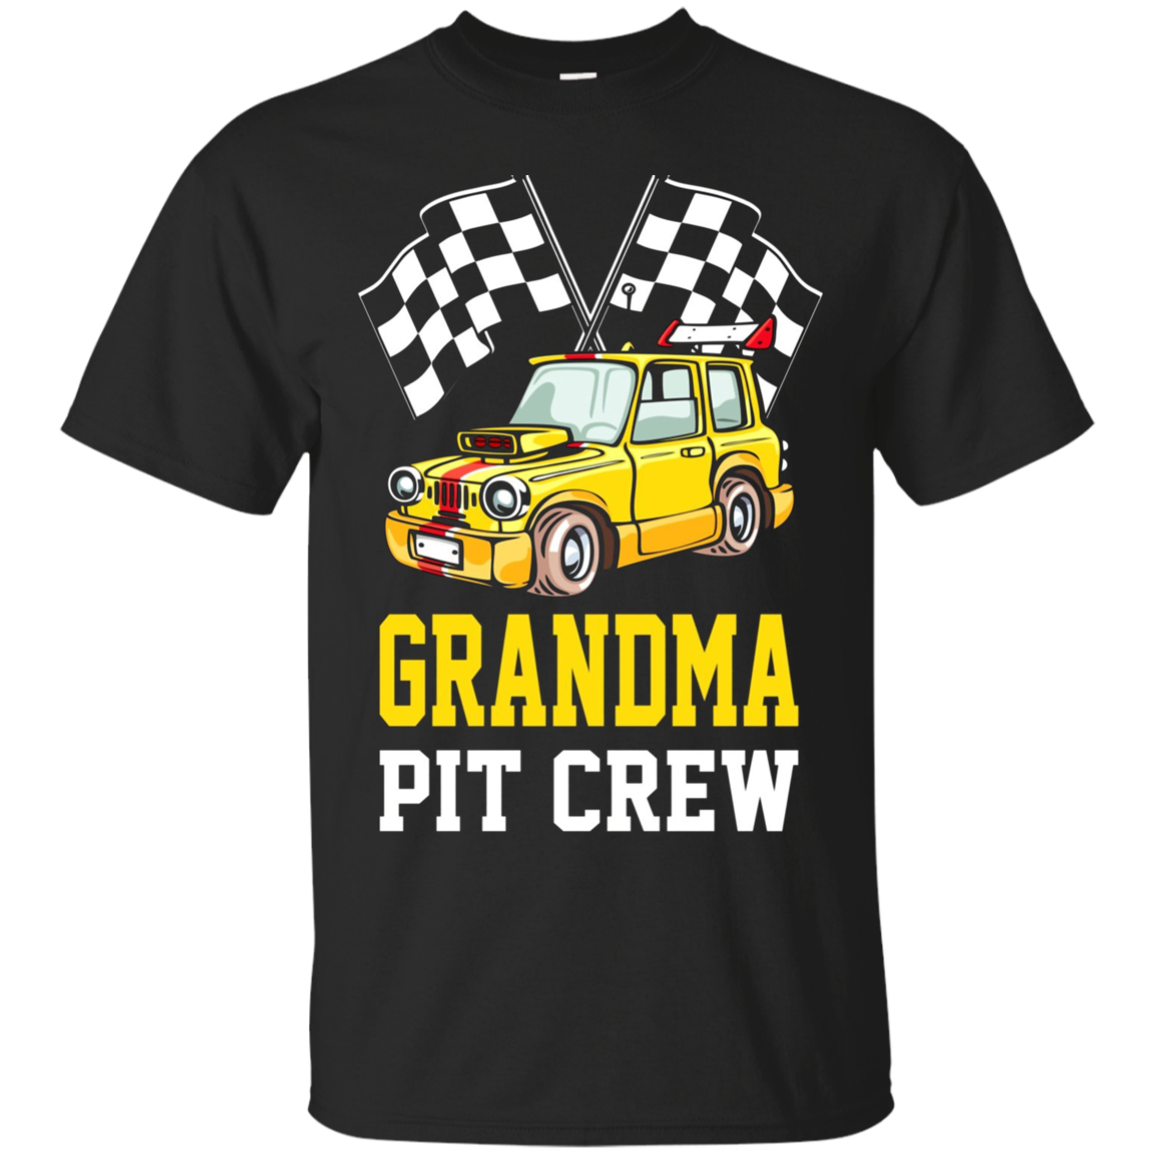 Pit Crew GRANDMA Back Print Long Sleeve T-Shirt Race Car